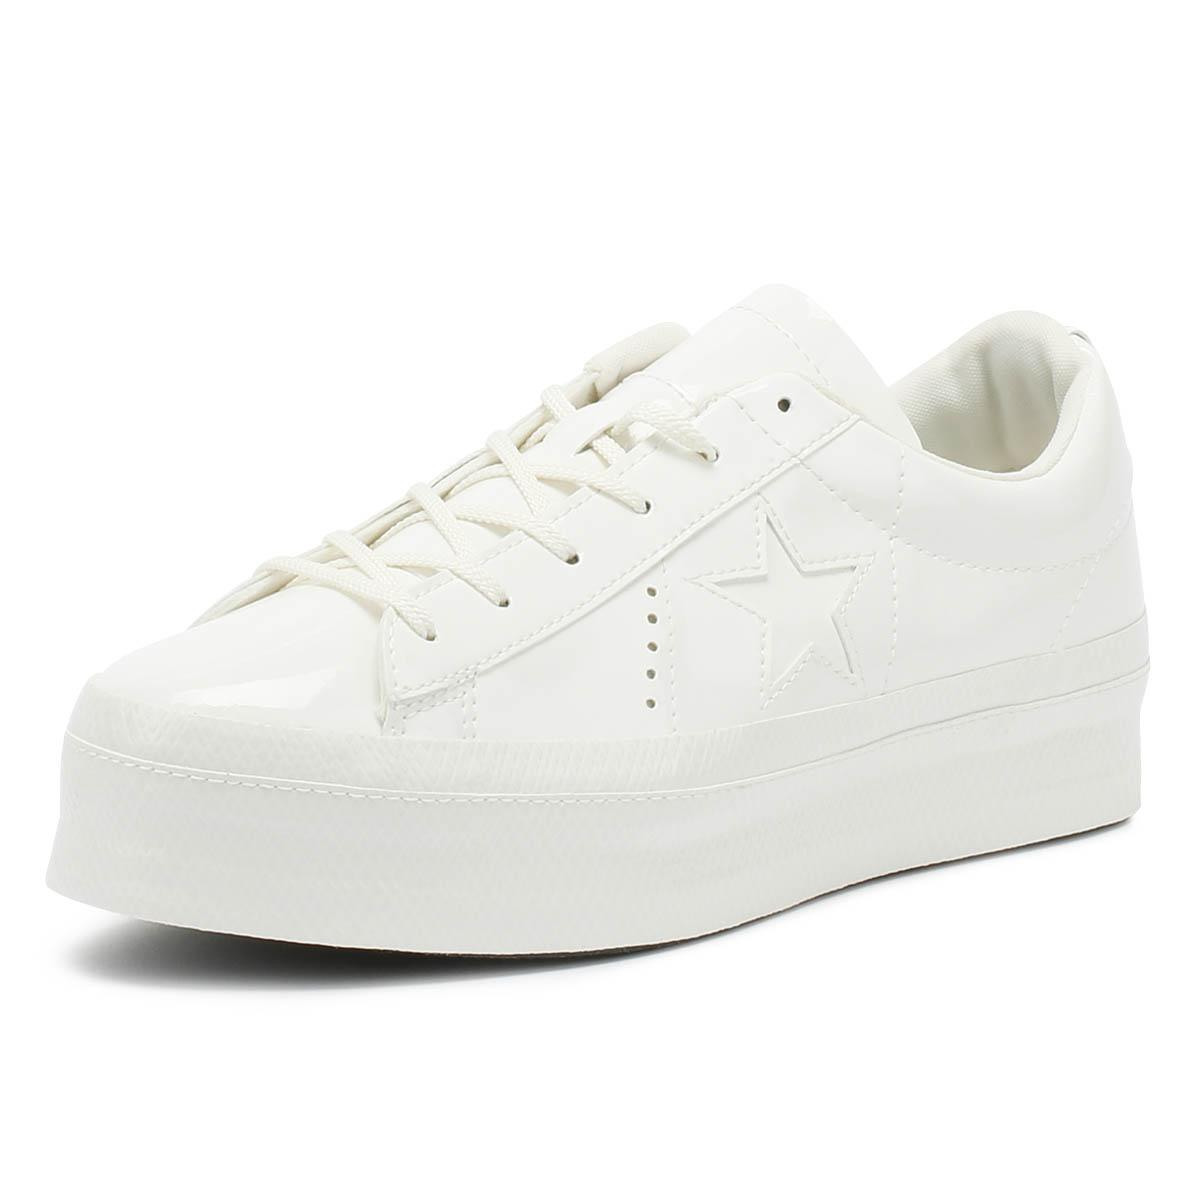 036dc9f8ad98 Converse - One Star Womens Vintage White Platform Ox Trainers - Lyst. View  fullscreen